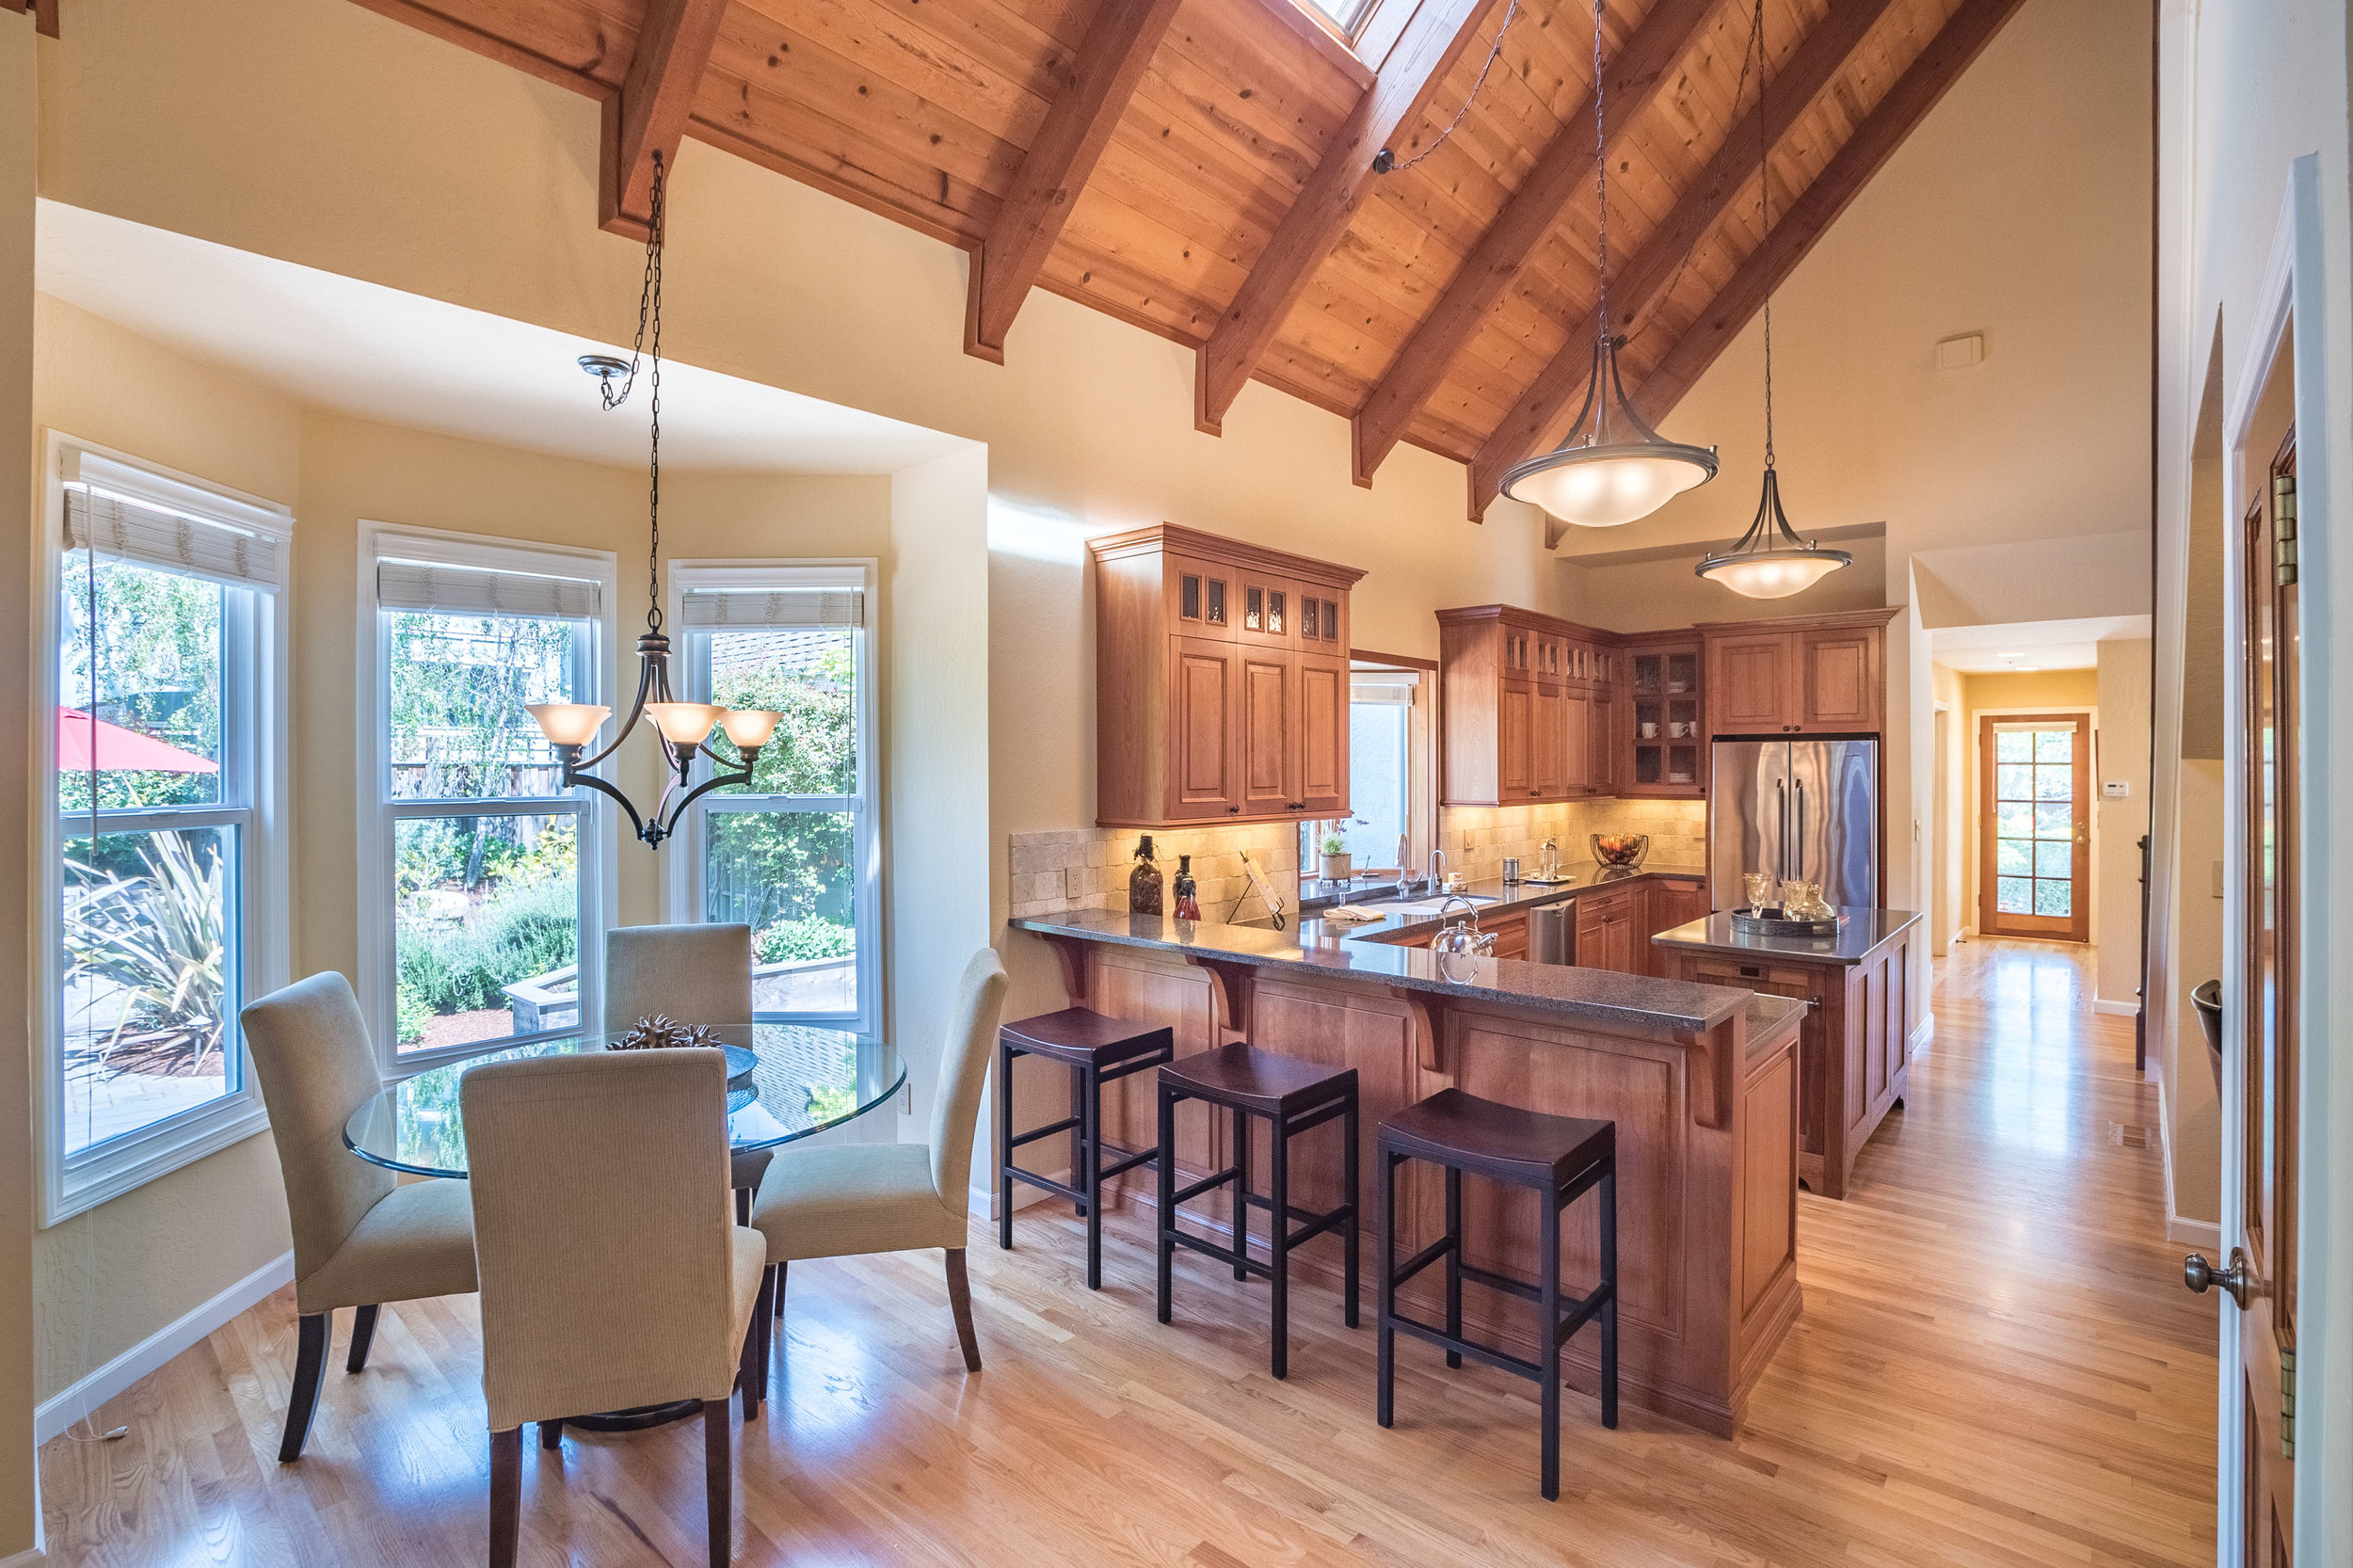 Open Floor Plan Home in Santa Cruz, California